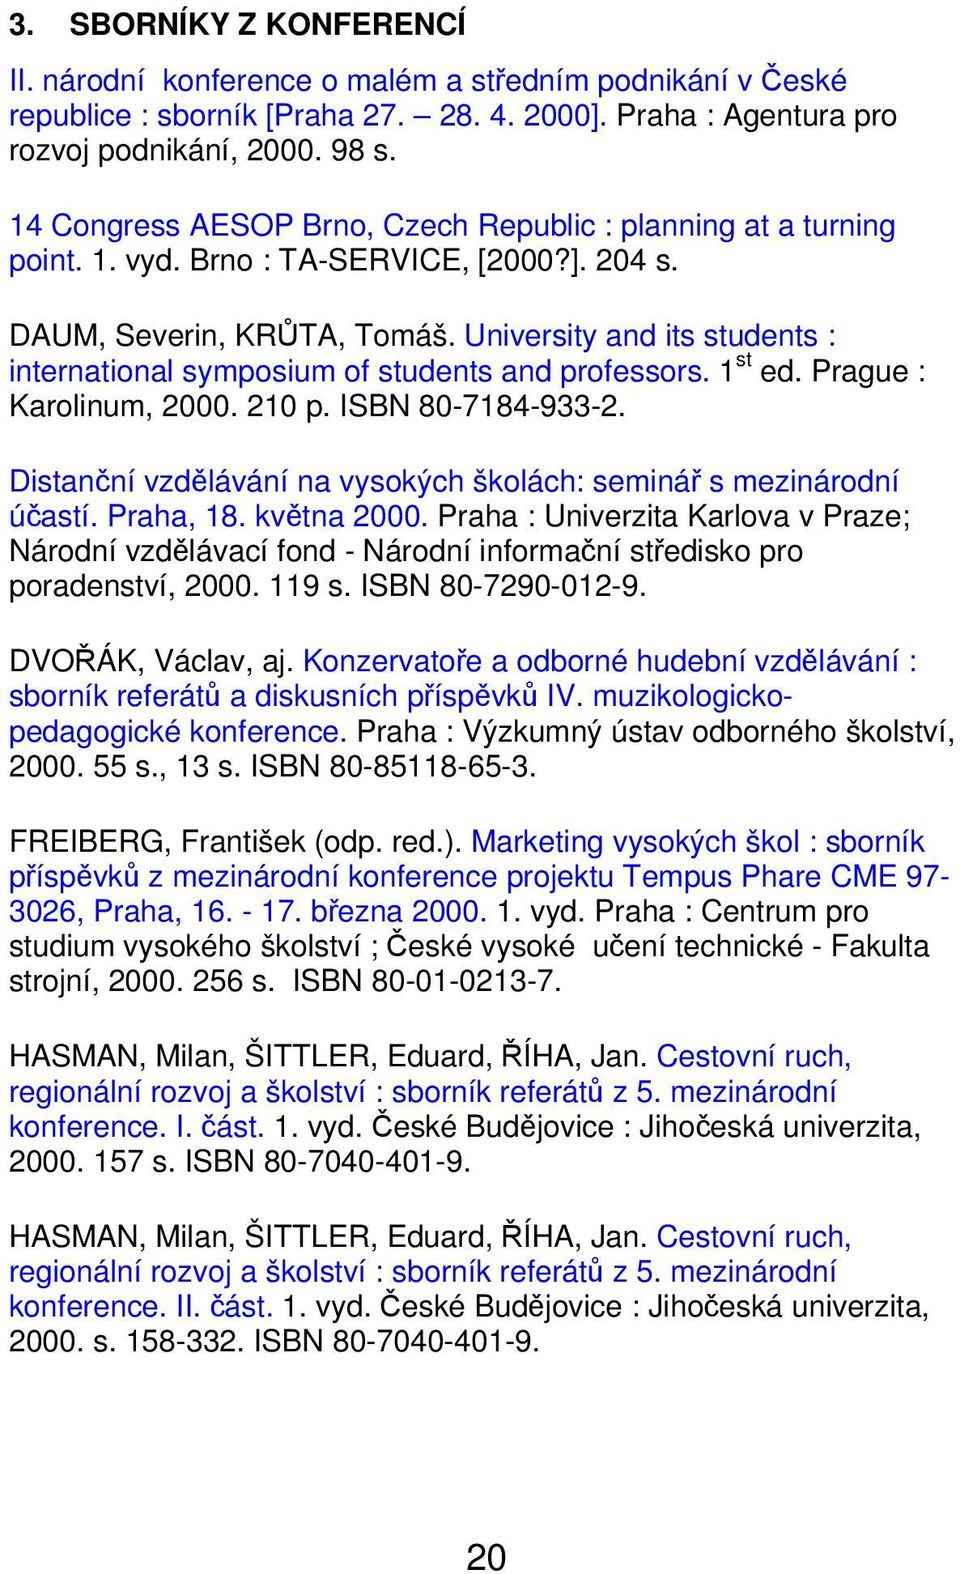 University and its students : international symposium of students and professors. 1 st ed. Prague : Karolinum, 2000. 210 p. ISBN 80-7184-933-2.